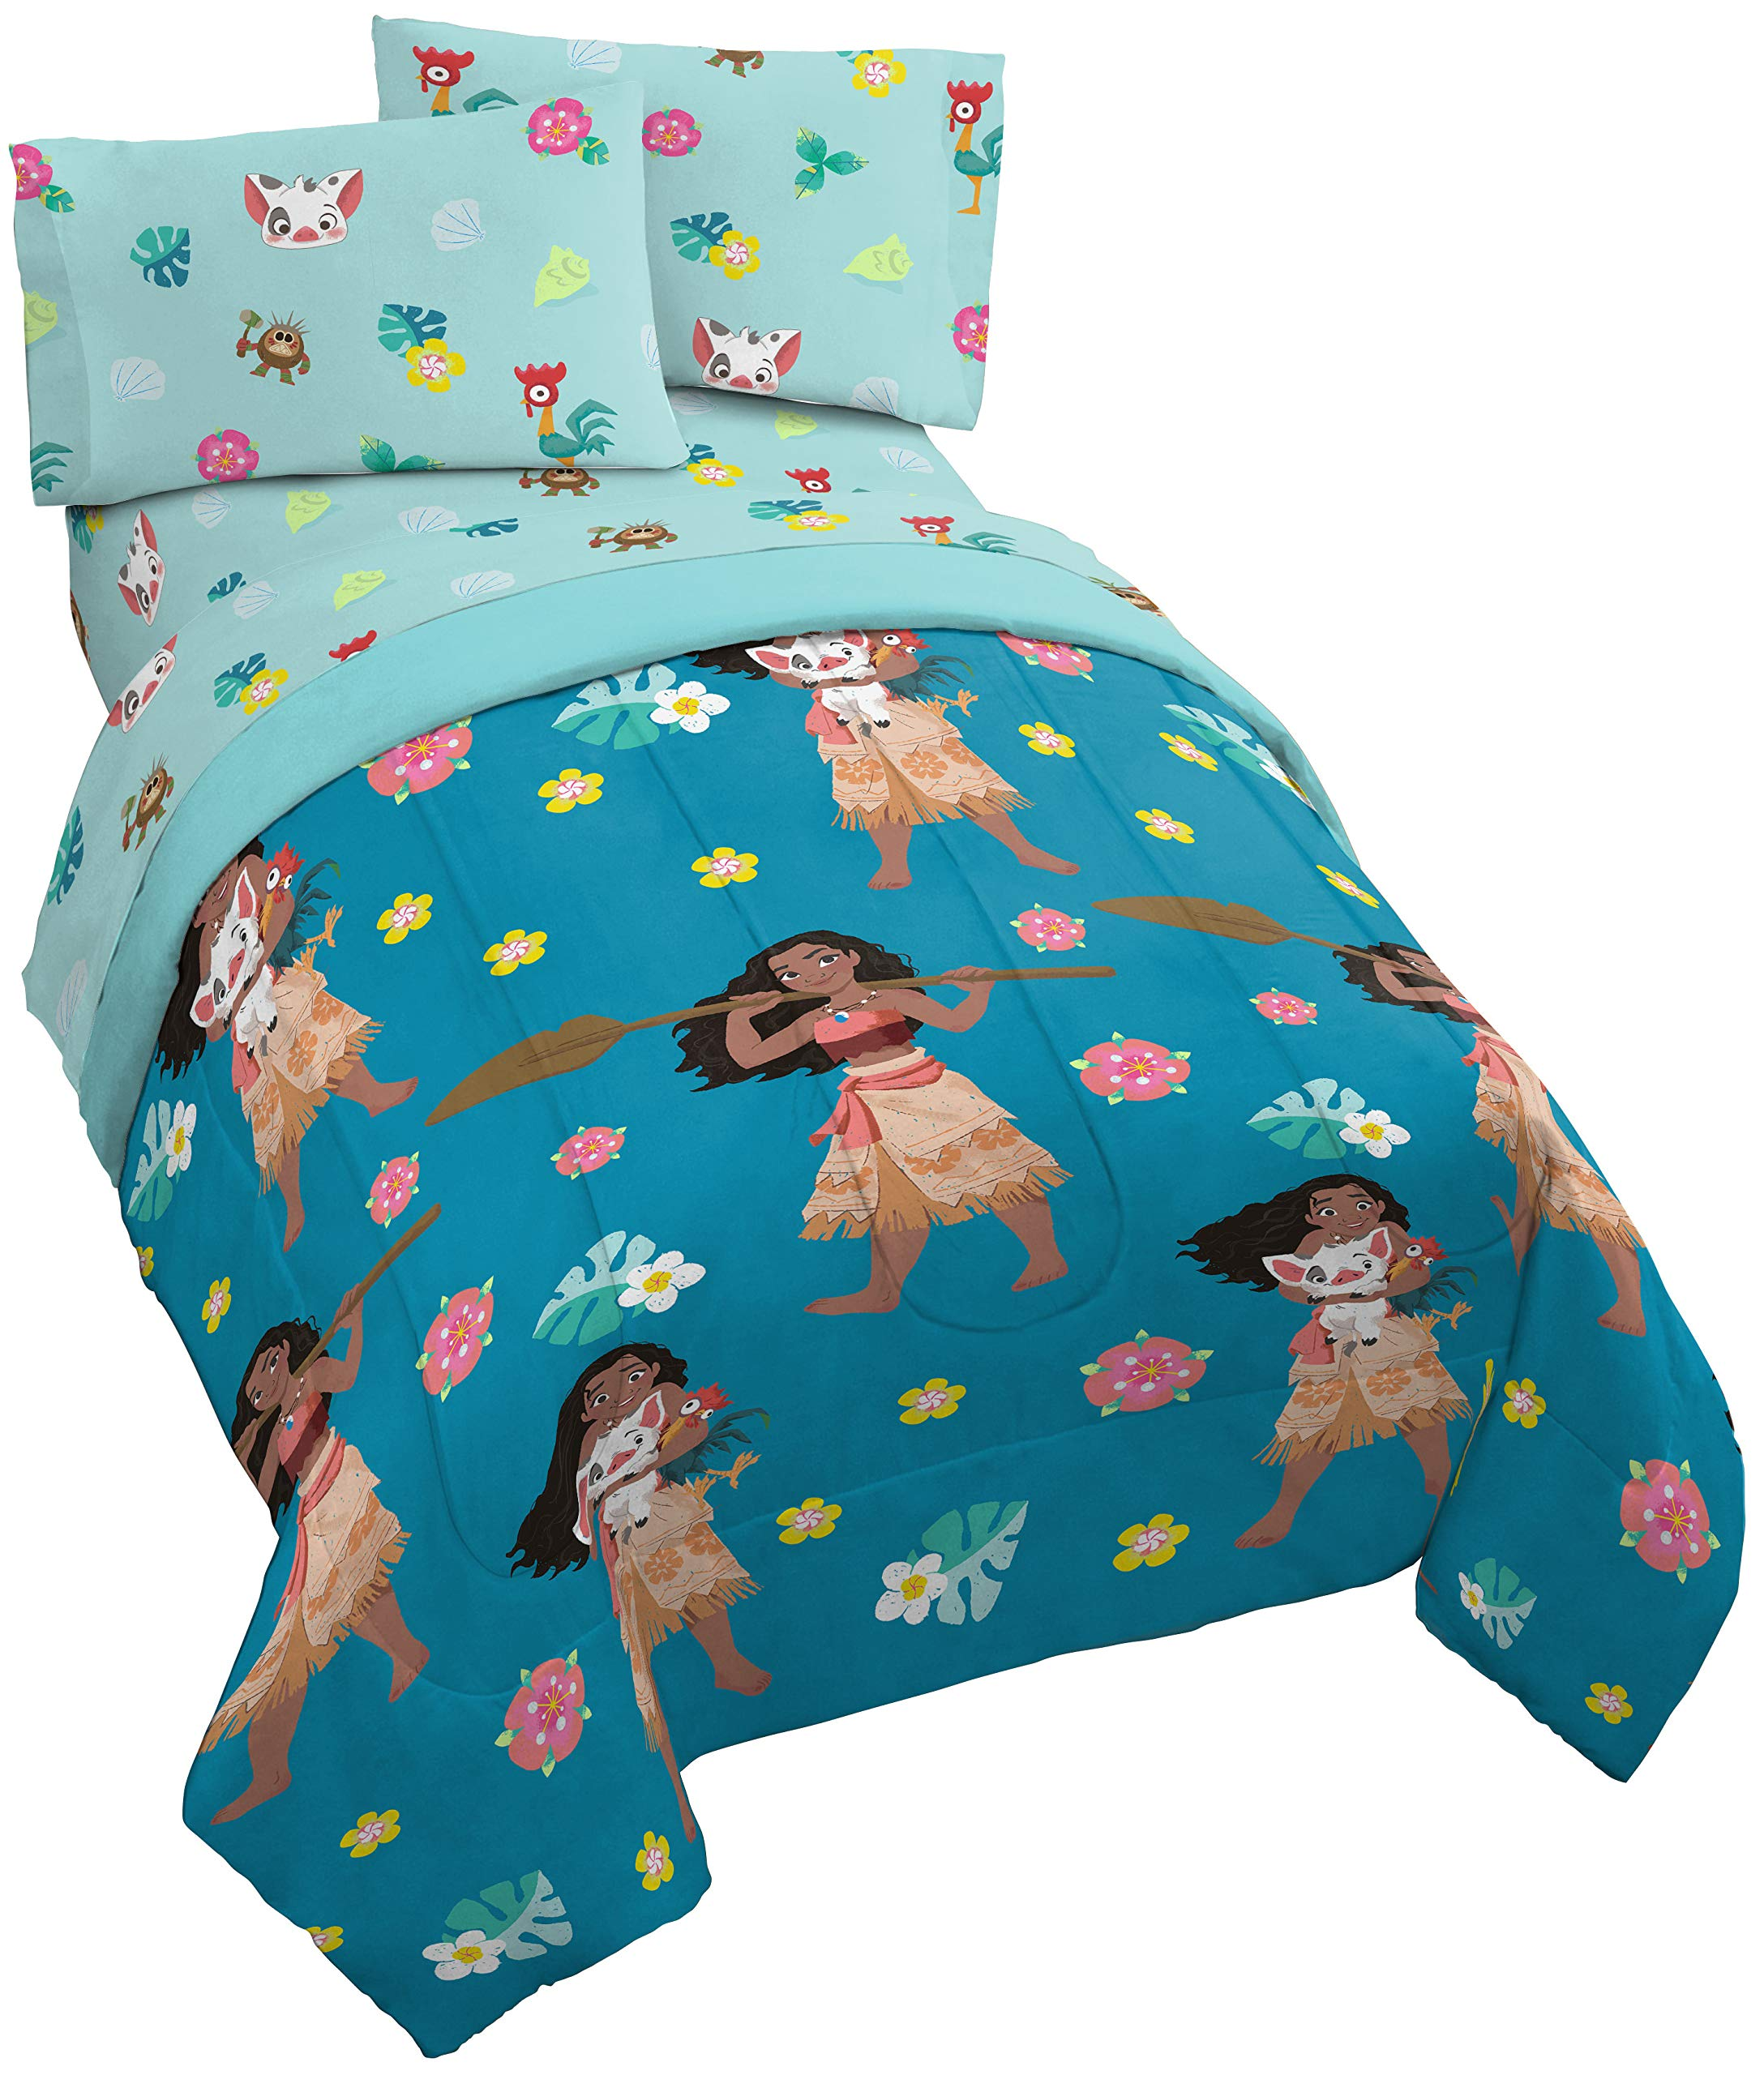 Jay Franco Disney Moana Flower Power 4 Piece Twin Bed Set - Includes Reversible Comforter & Sheet Set - Super Soft Fade Resistant Polyester - (Official Disney Product) by Jay Franco (Image #1)